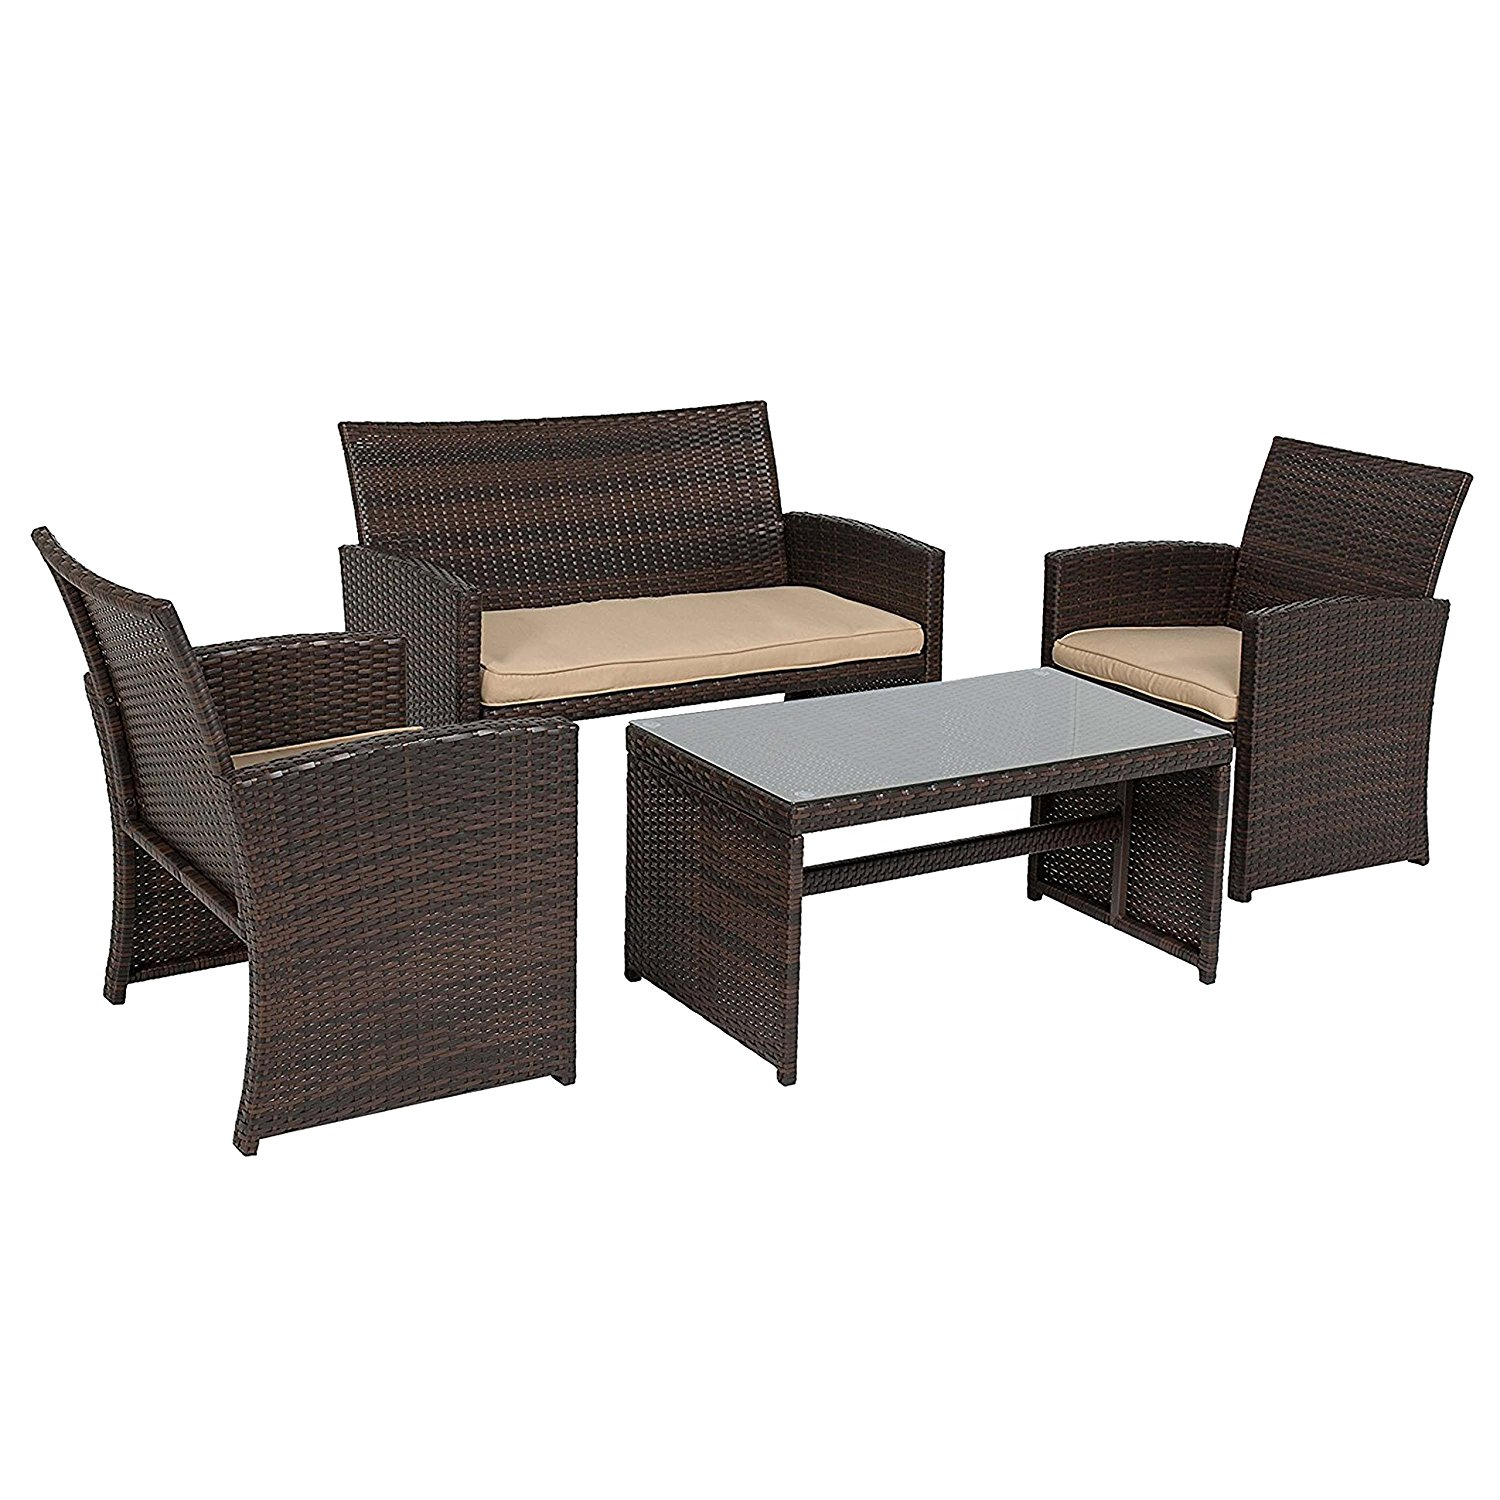 Bizx Rf4br 4 Piece Wicker Rattan Outdoor Patio Furniture